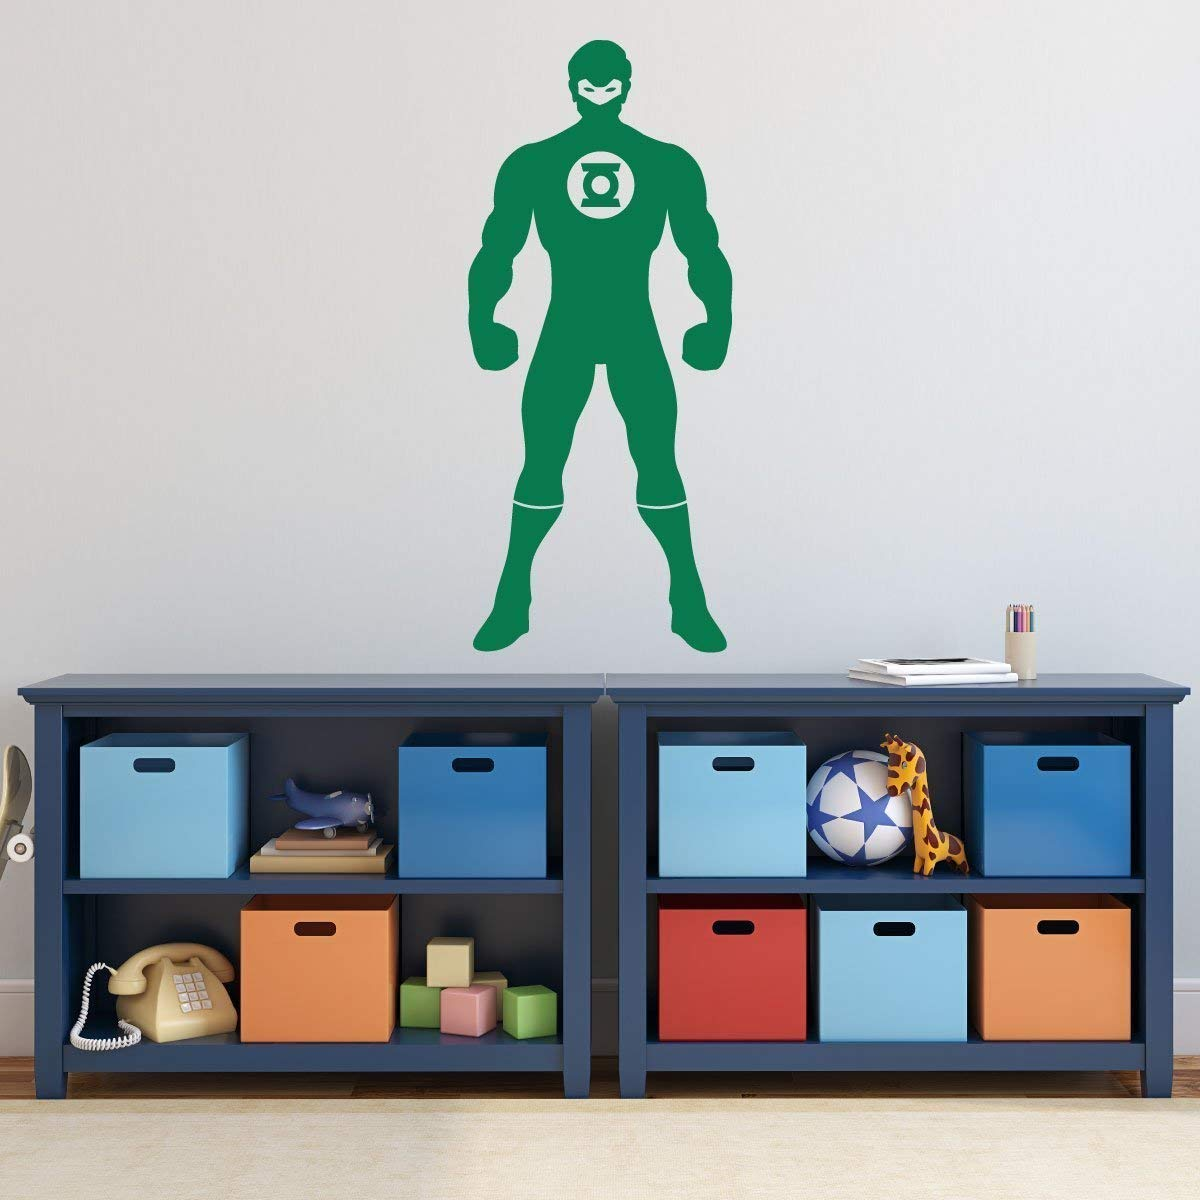 DC Comics Figure Silhouette Vinyl Wall Decal Green Gray Decoration for Playroom Boys Room Birthday Party Custom Boy Name Green Lantern Superhero Decor Black Other Colors Red Yellow White